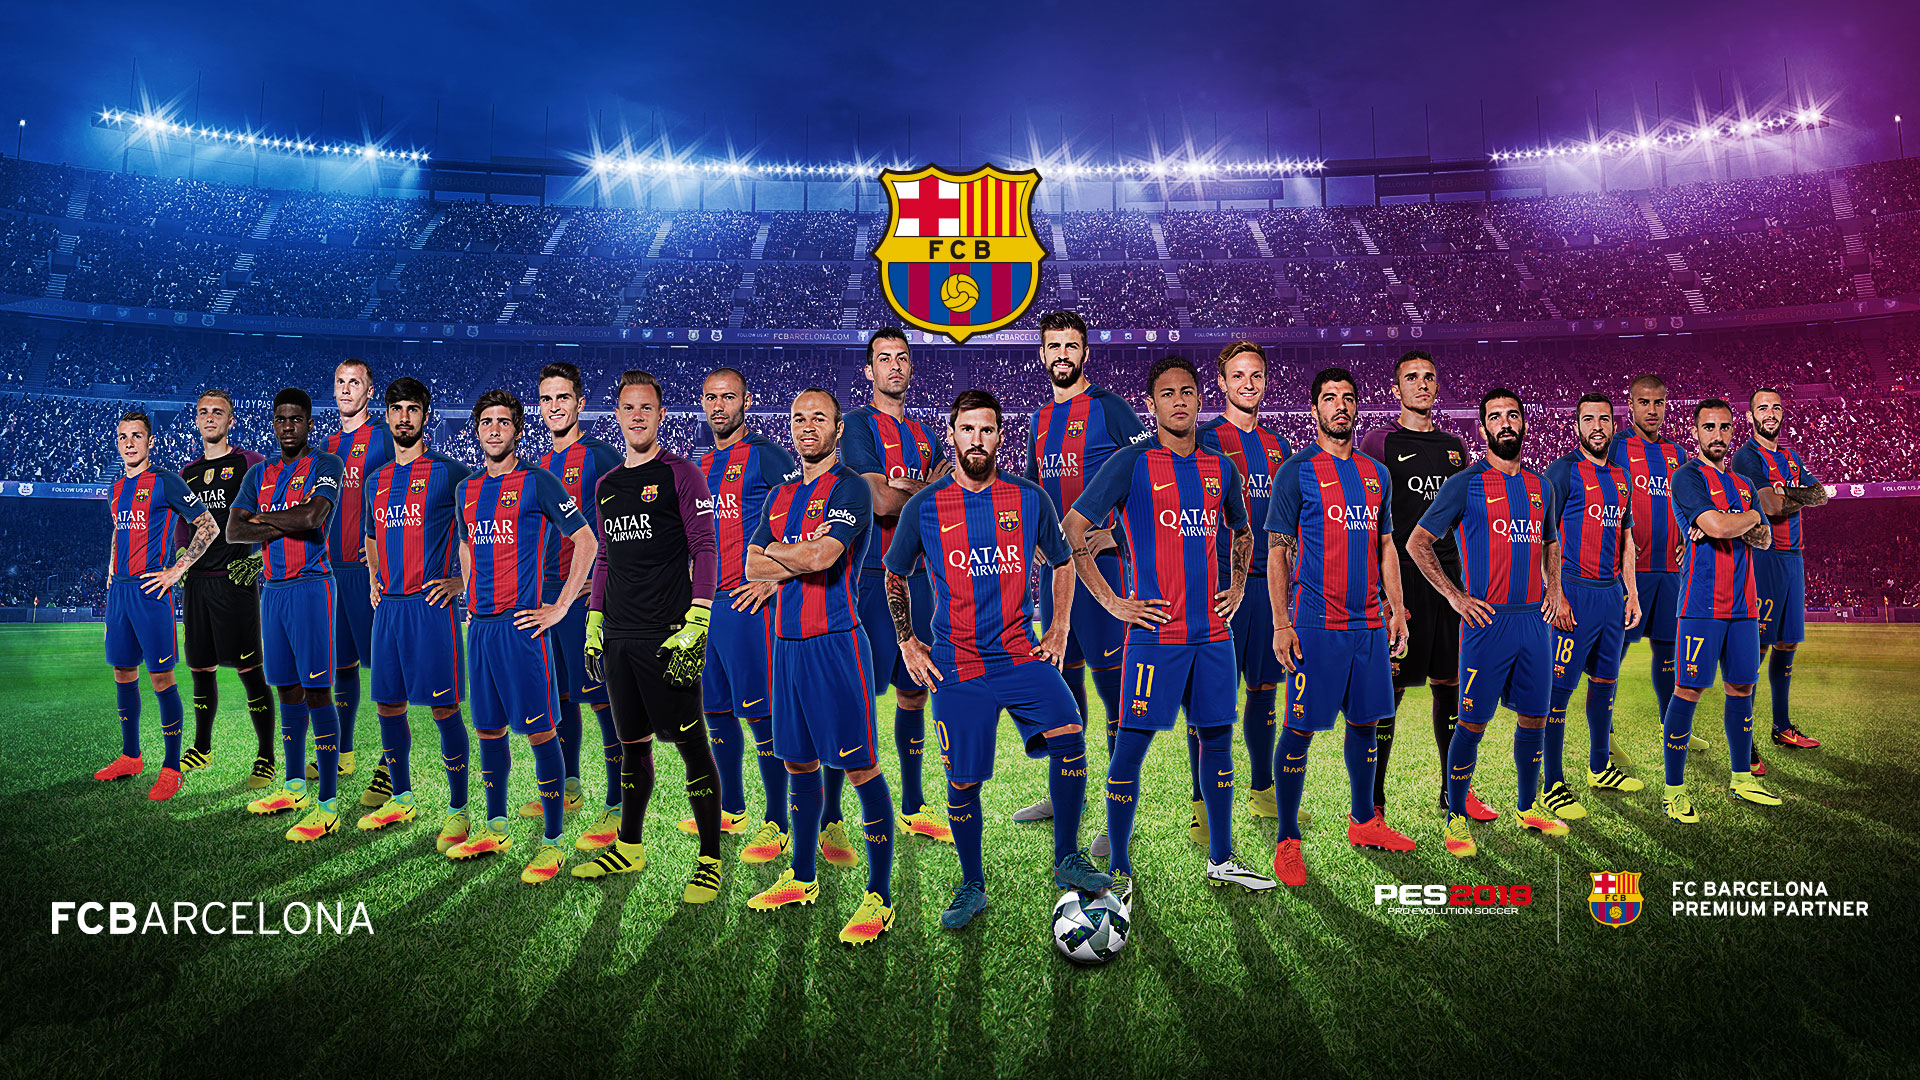 Pro Evolution Soccer 2018 FC Barcelona Theme Game 1920x1080